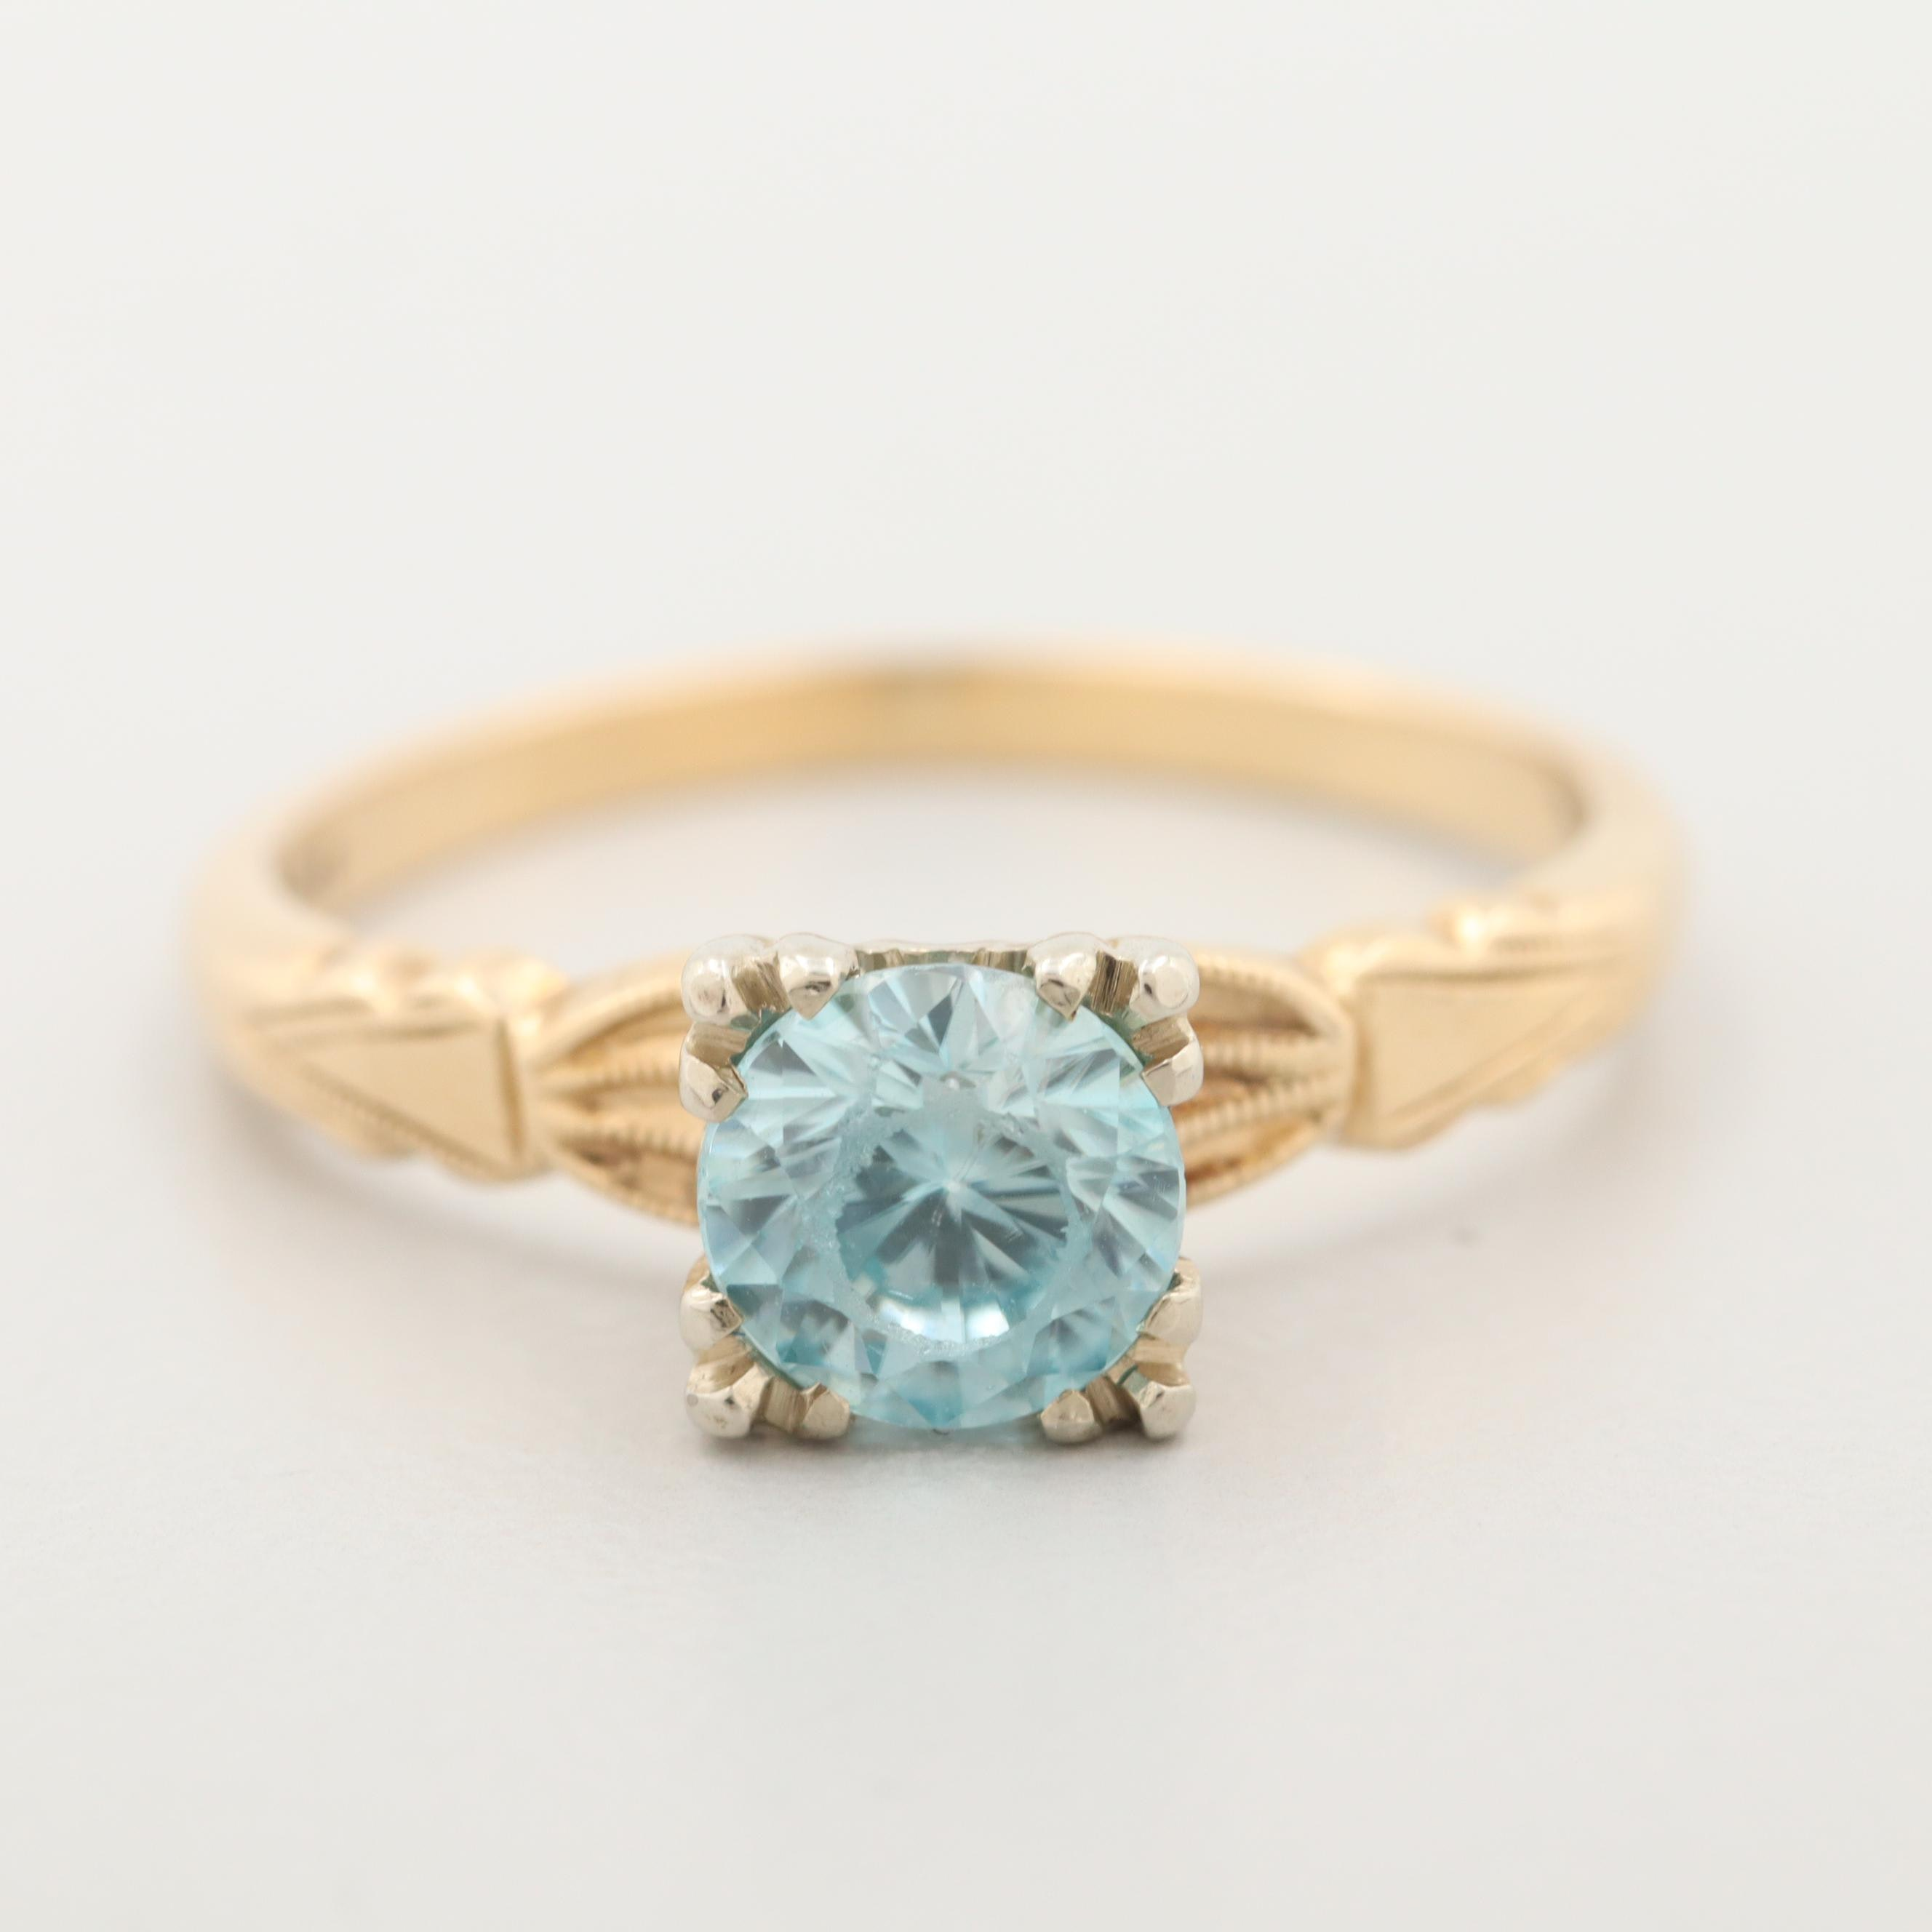 Vintage 14K Yellow Gold Blue Zircon Ring